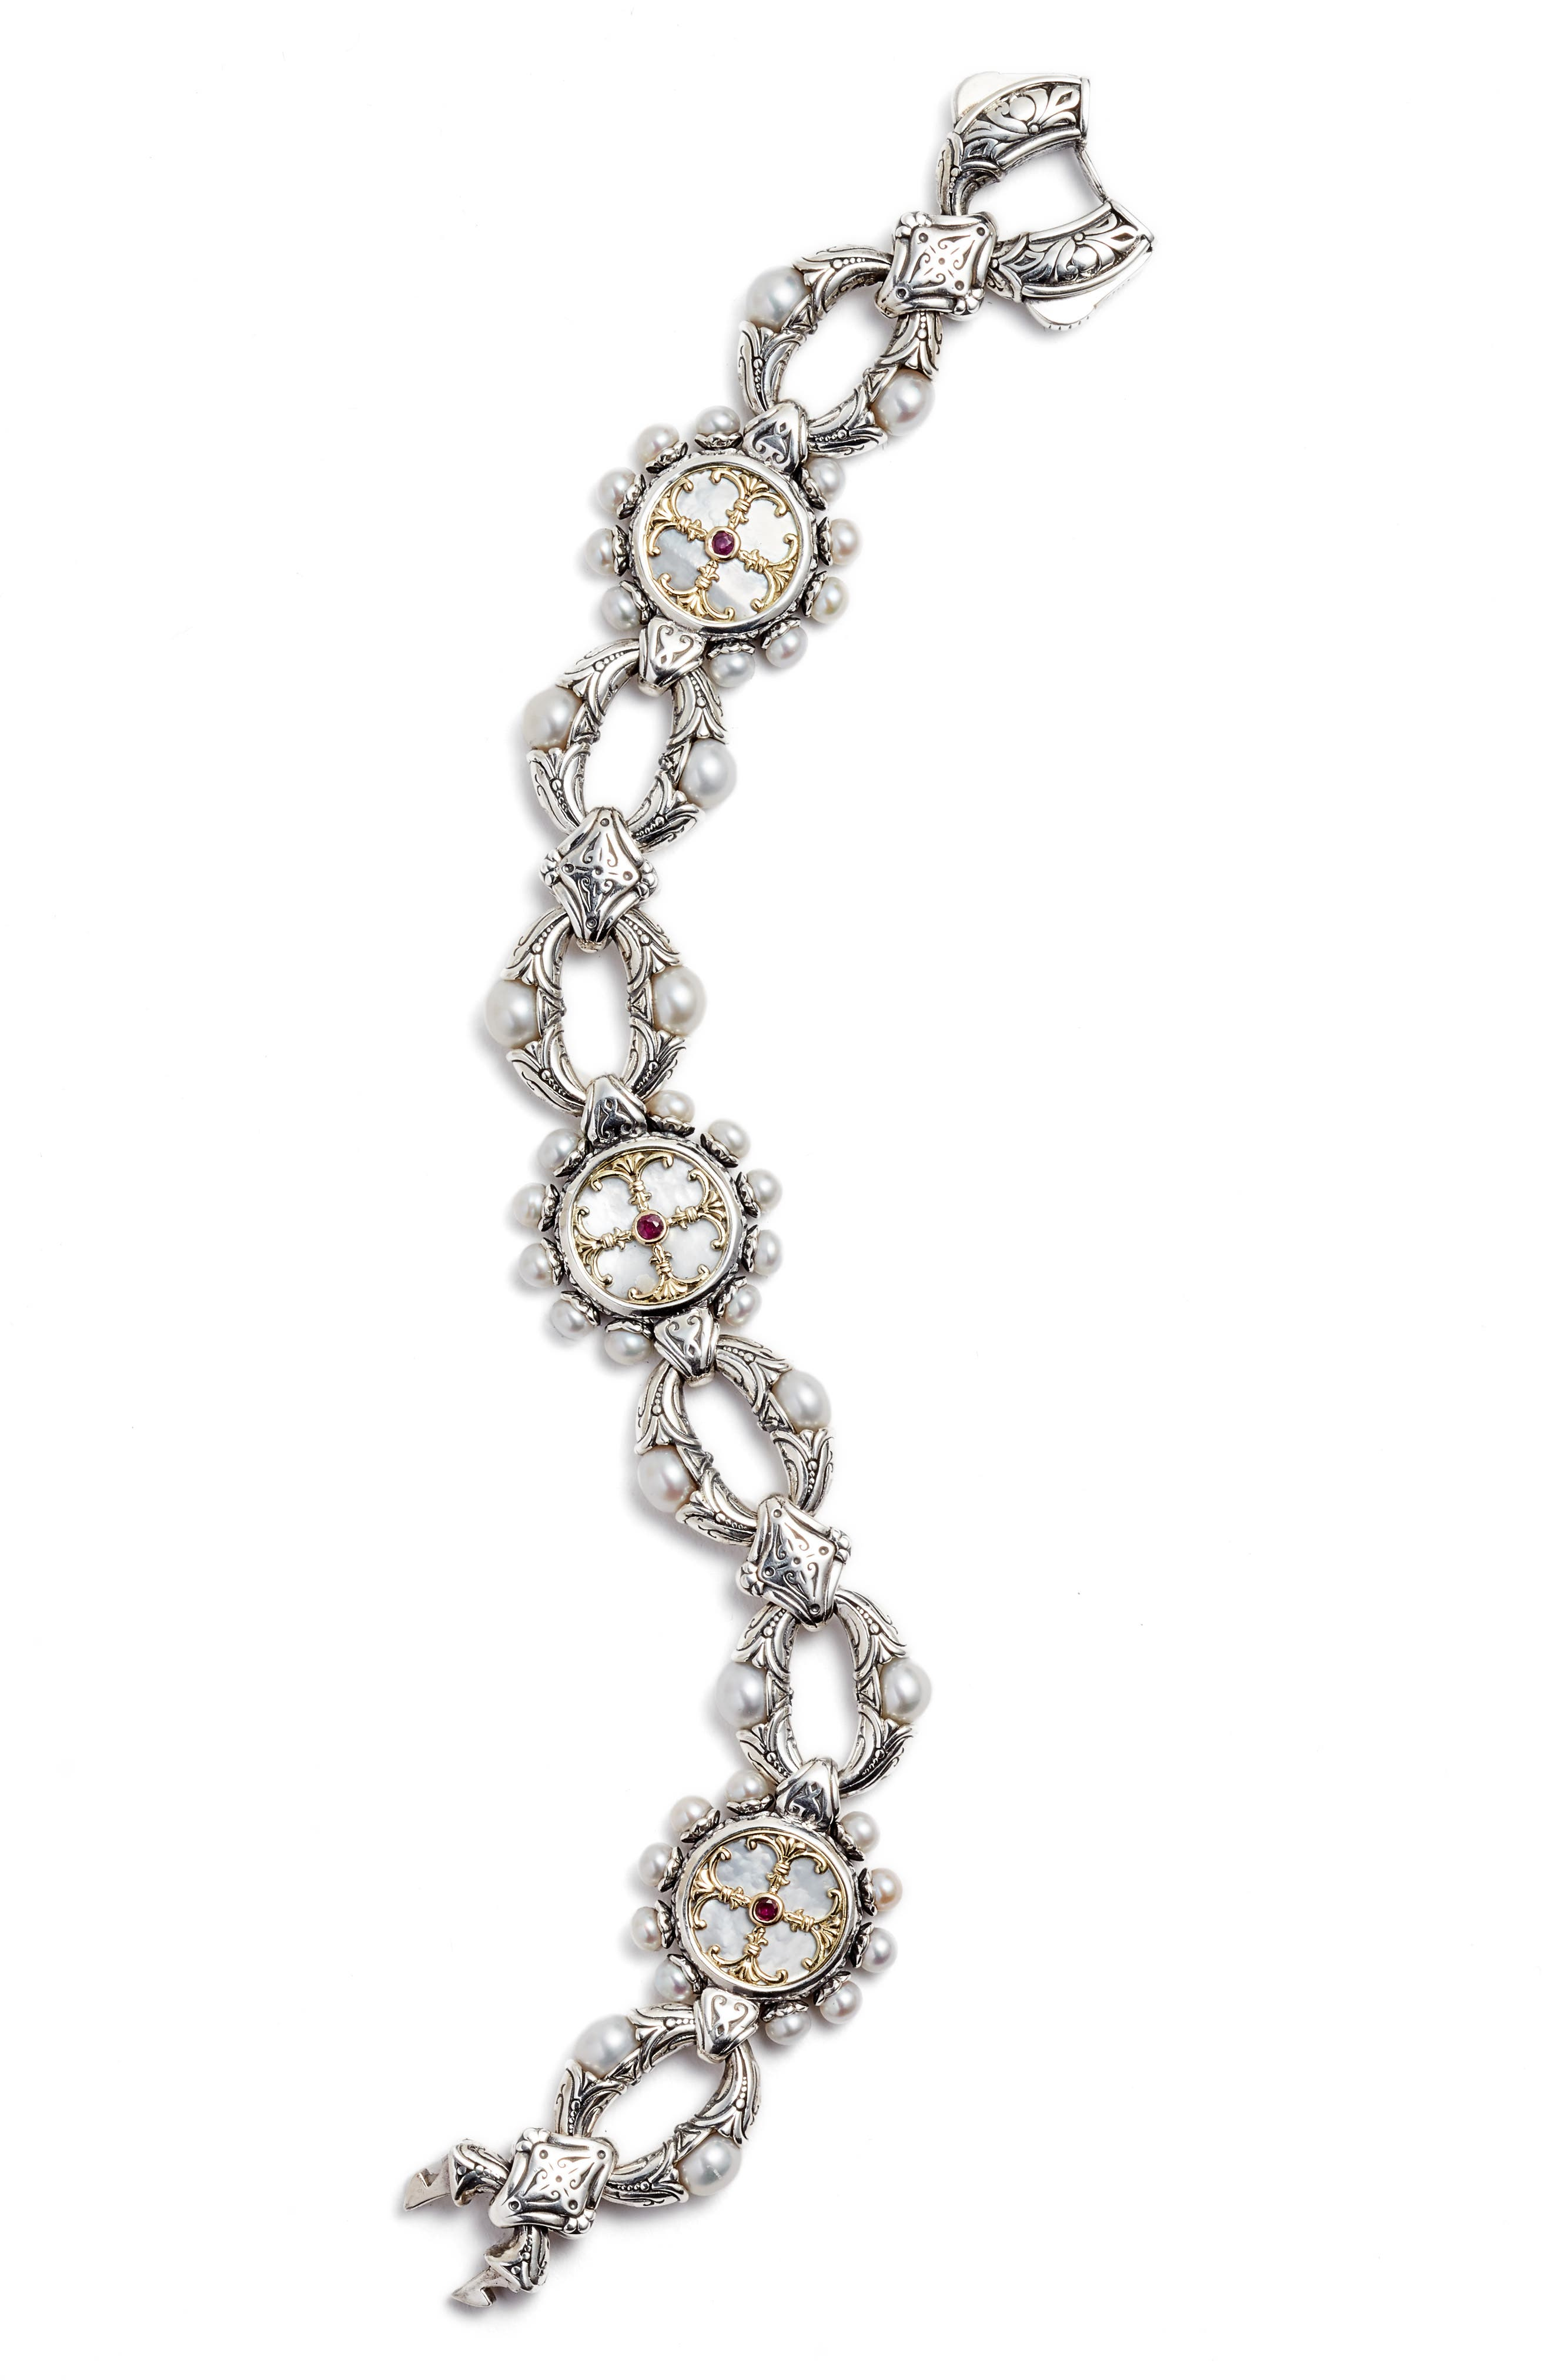 Silver Mother-of-Pearl & Ruby Bracelet,                         Main,                         color, SILVER/ GOLD/ RED/ WHITE